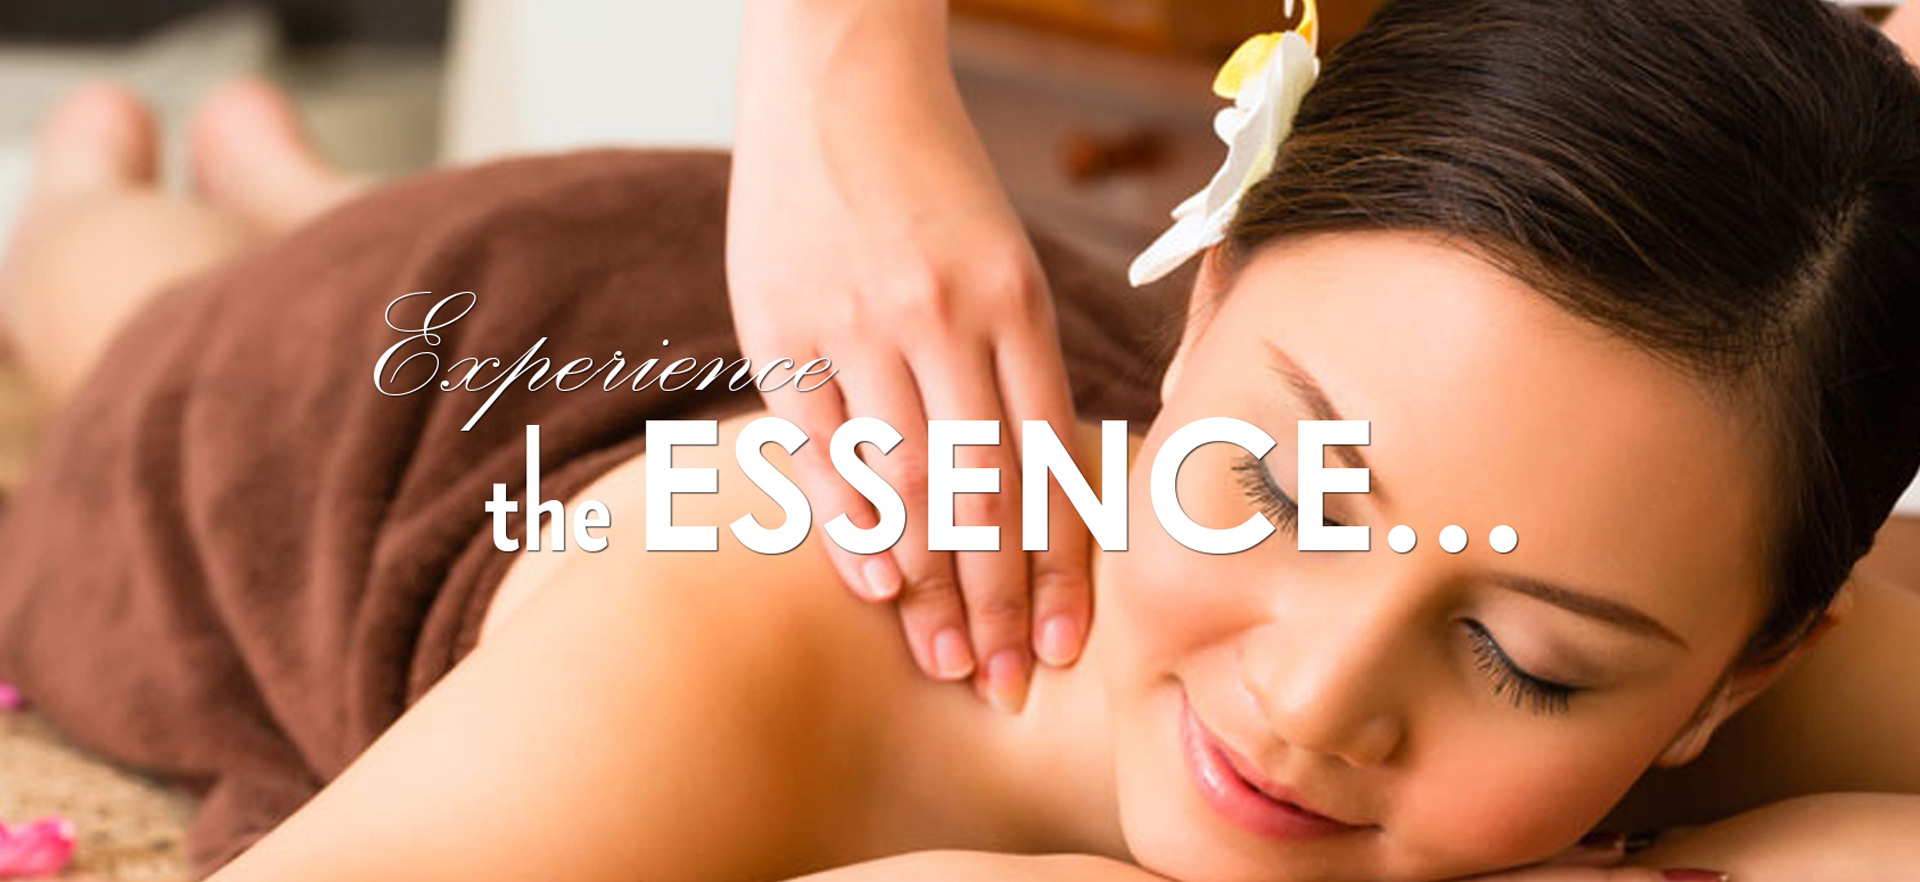 Kolkata best body massage parlour